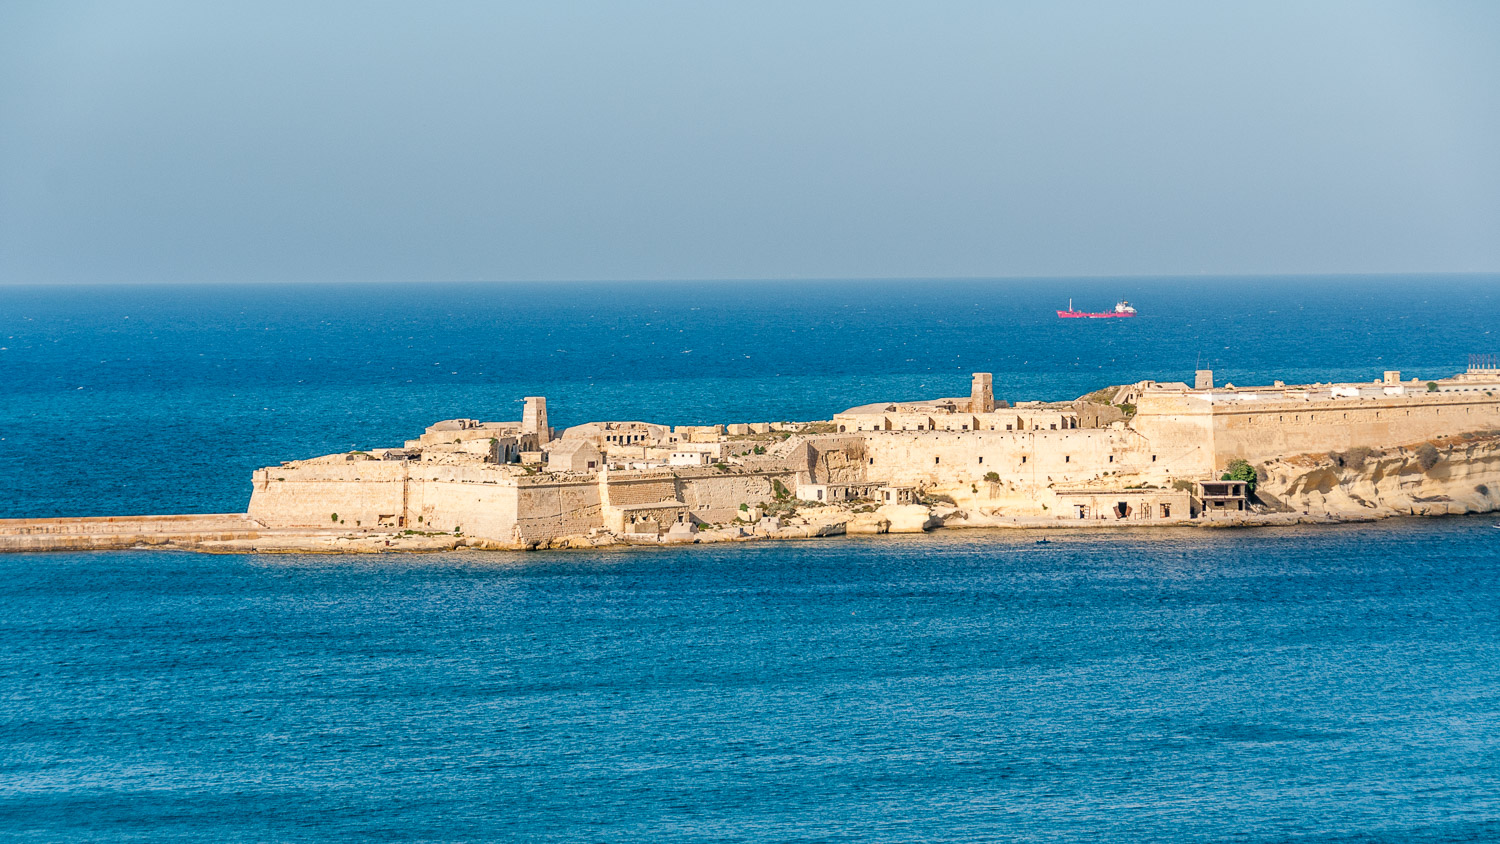 MA10139-The-fortifications-of-Valetta_v1.jpg